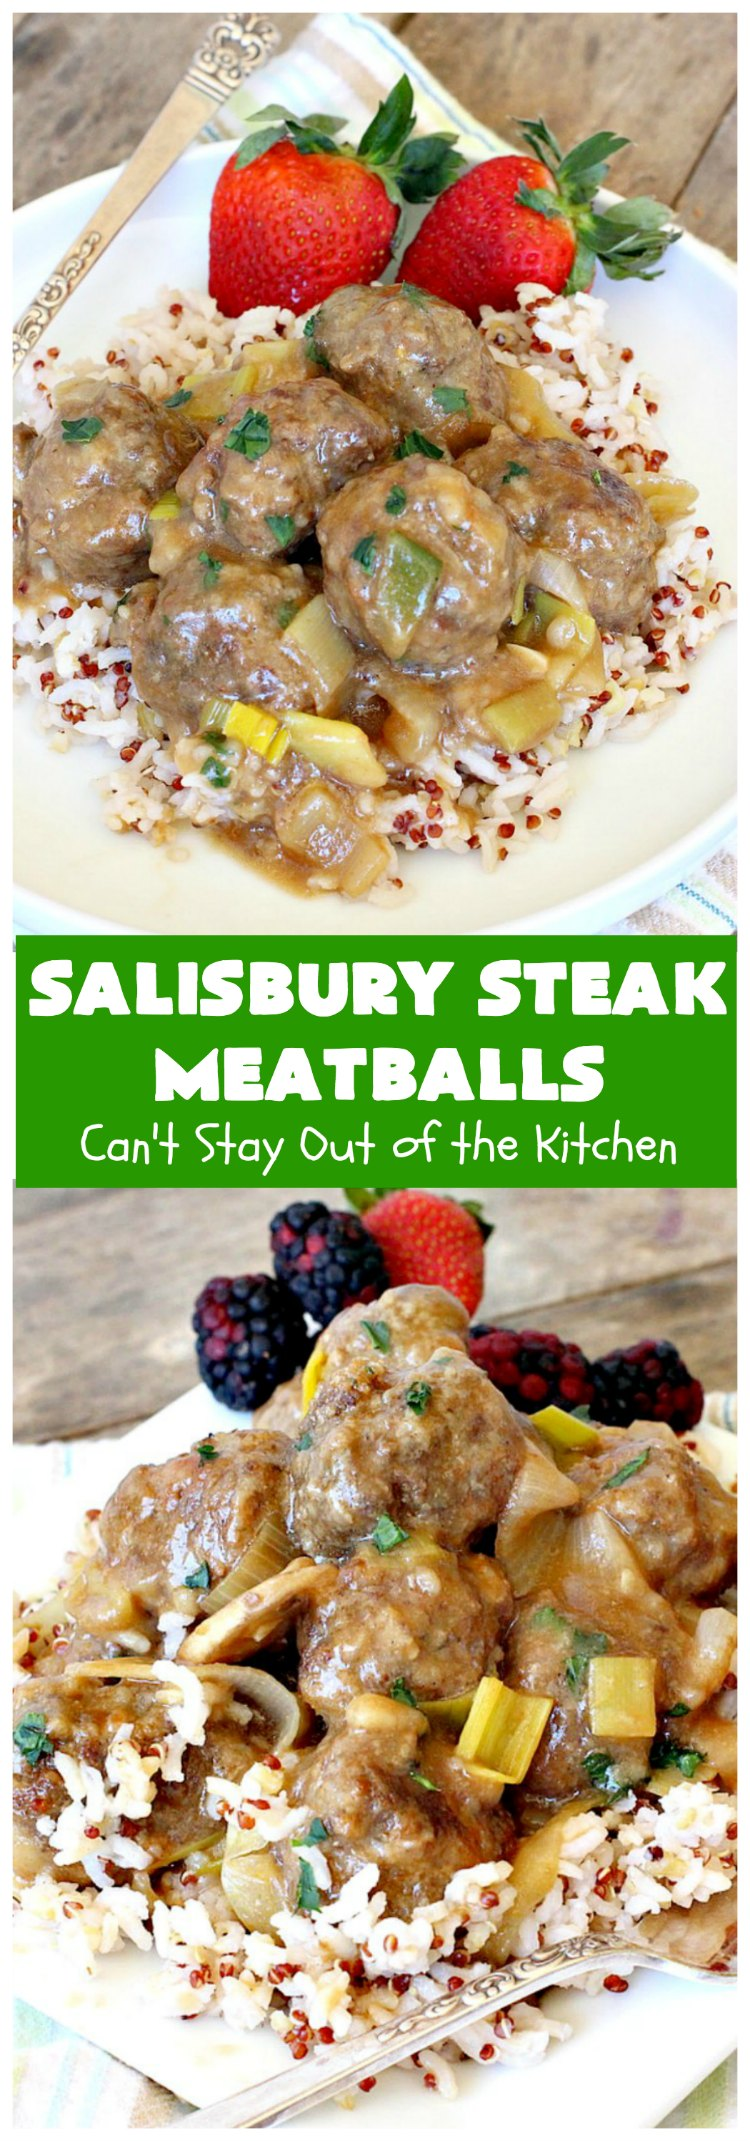 Salisbury Steak Meatballs | Can't Stay Out of the Kitchen | these sumptuous #meatballs were a big hit with our company. Serve over #rice or #noodles. #GlutenFree #SalisburySteak #beef #SalisburySteakMeatballs